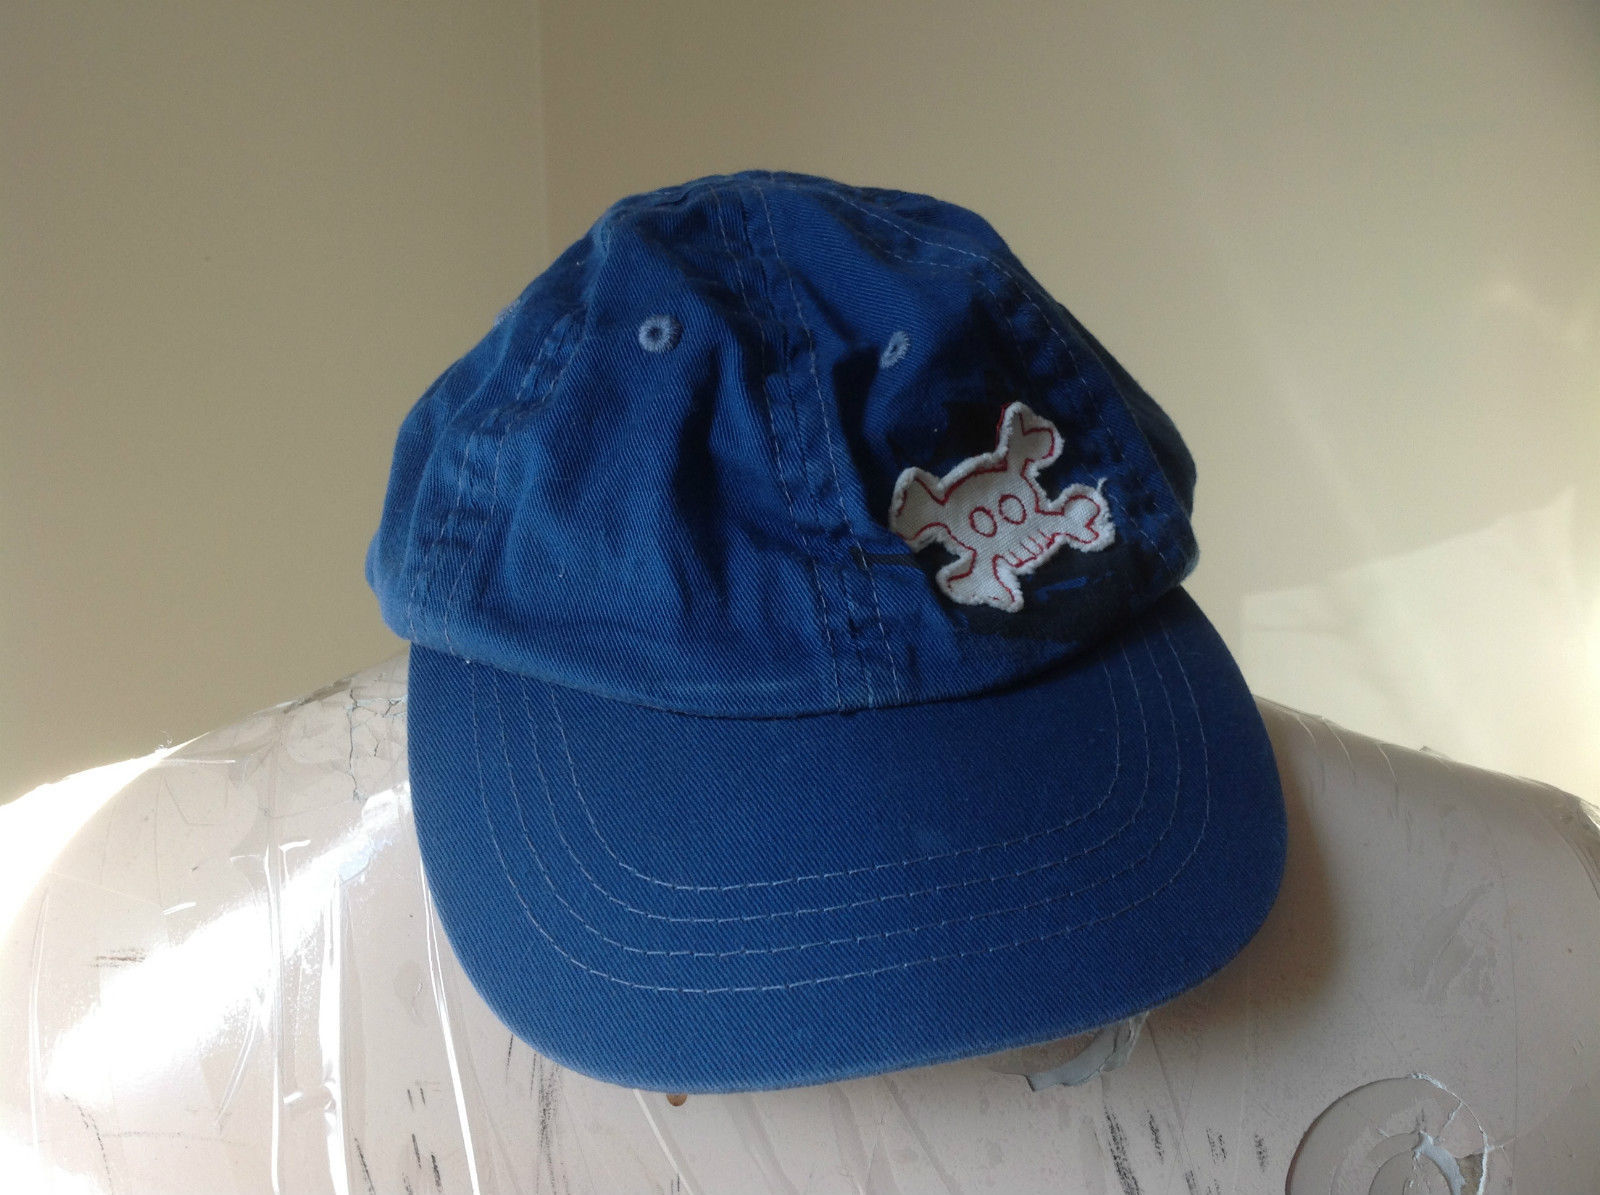 Young Boys Blue Baseball Hat Skull and Crossbones Design Velcro Adjustable